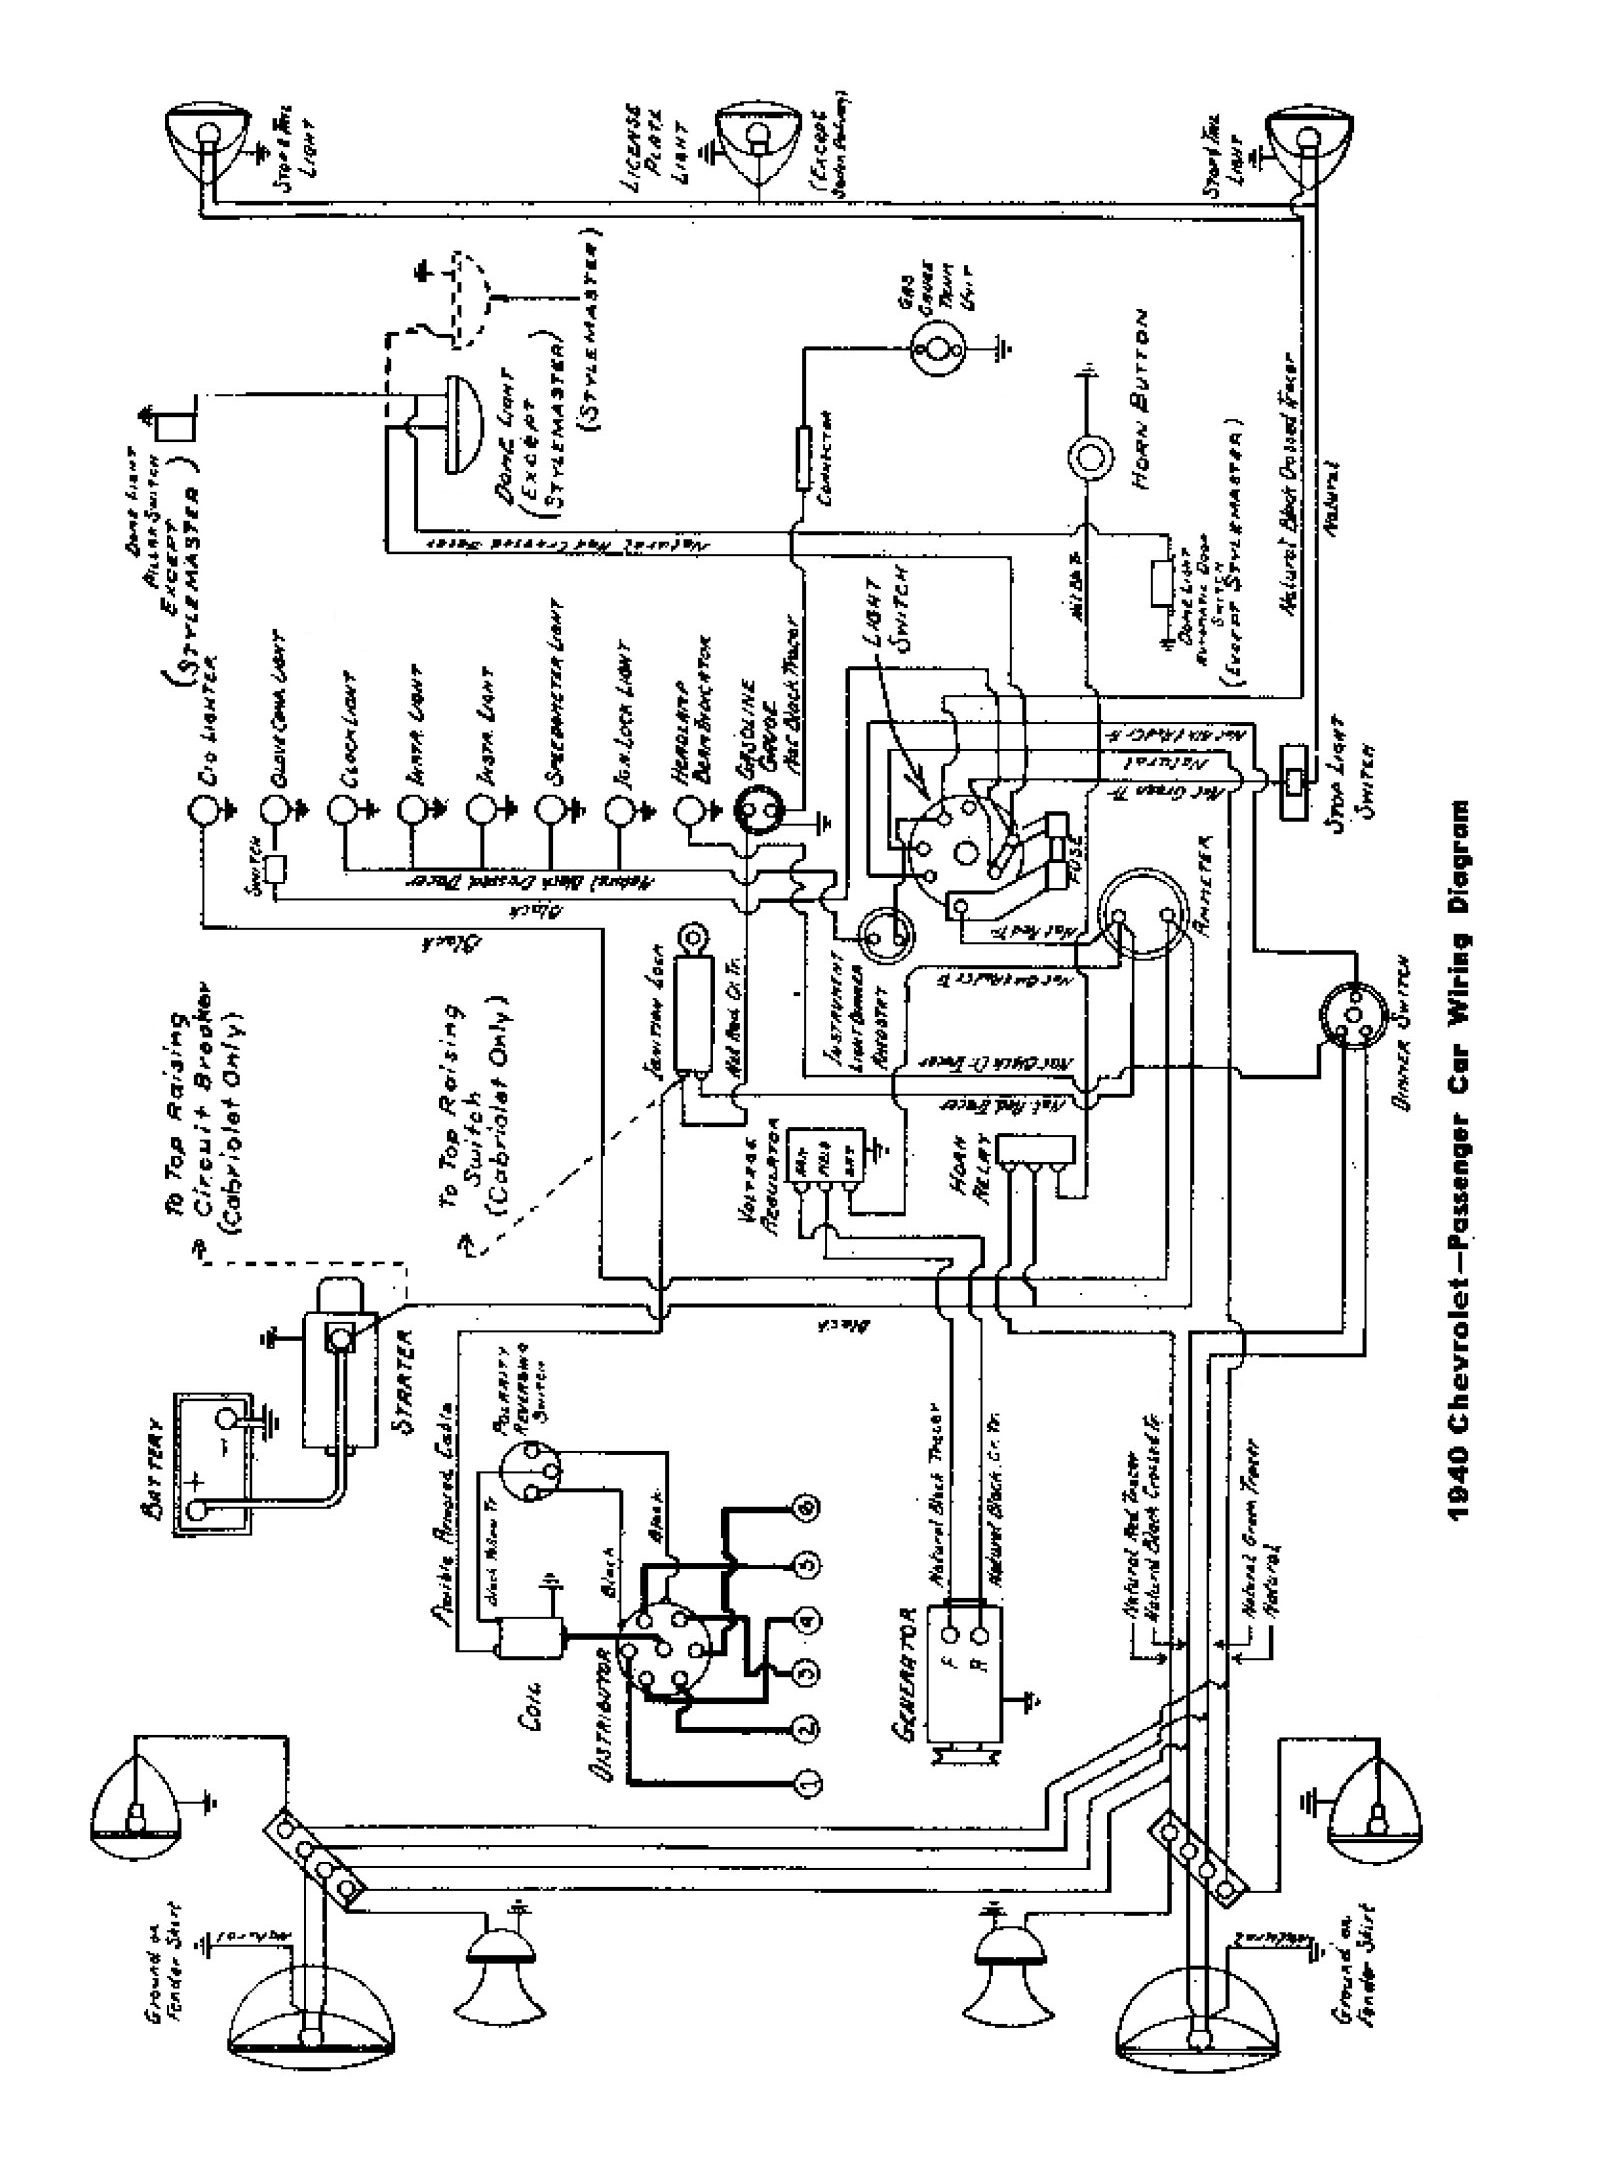 hight resolution of 1952 international truck wiring diagram schematic wiring diagram 1995 international 4700 wiring diagram 1952 international l110